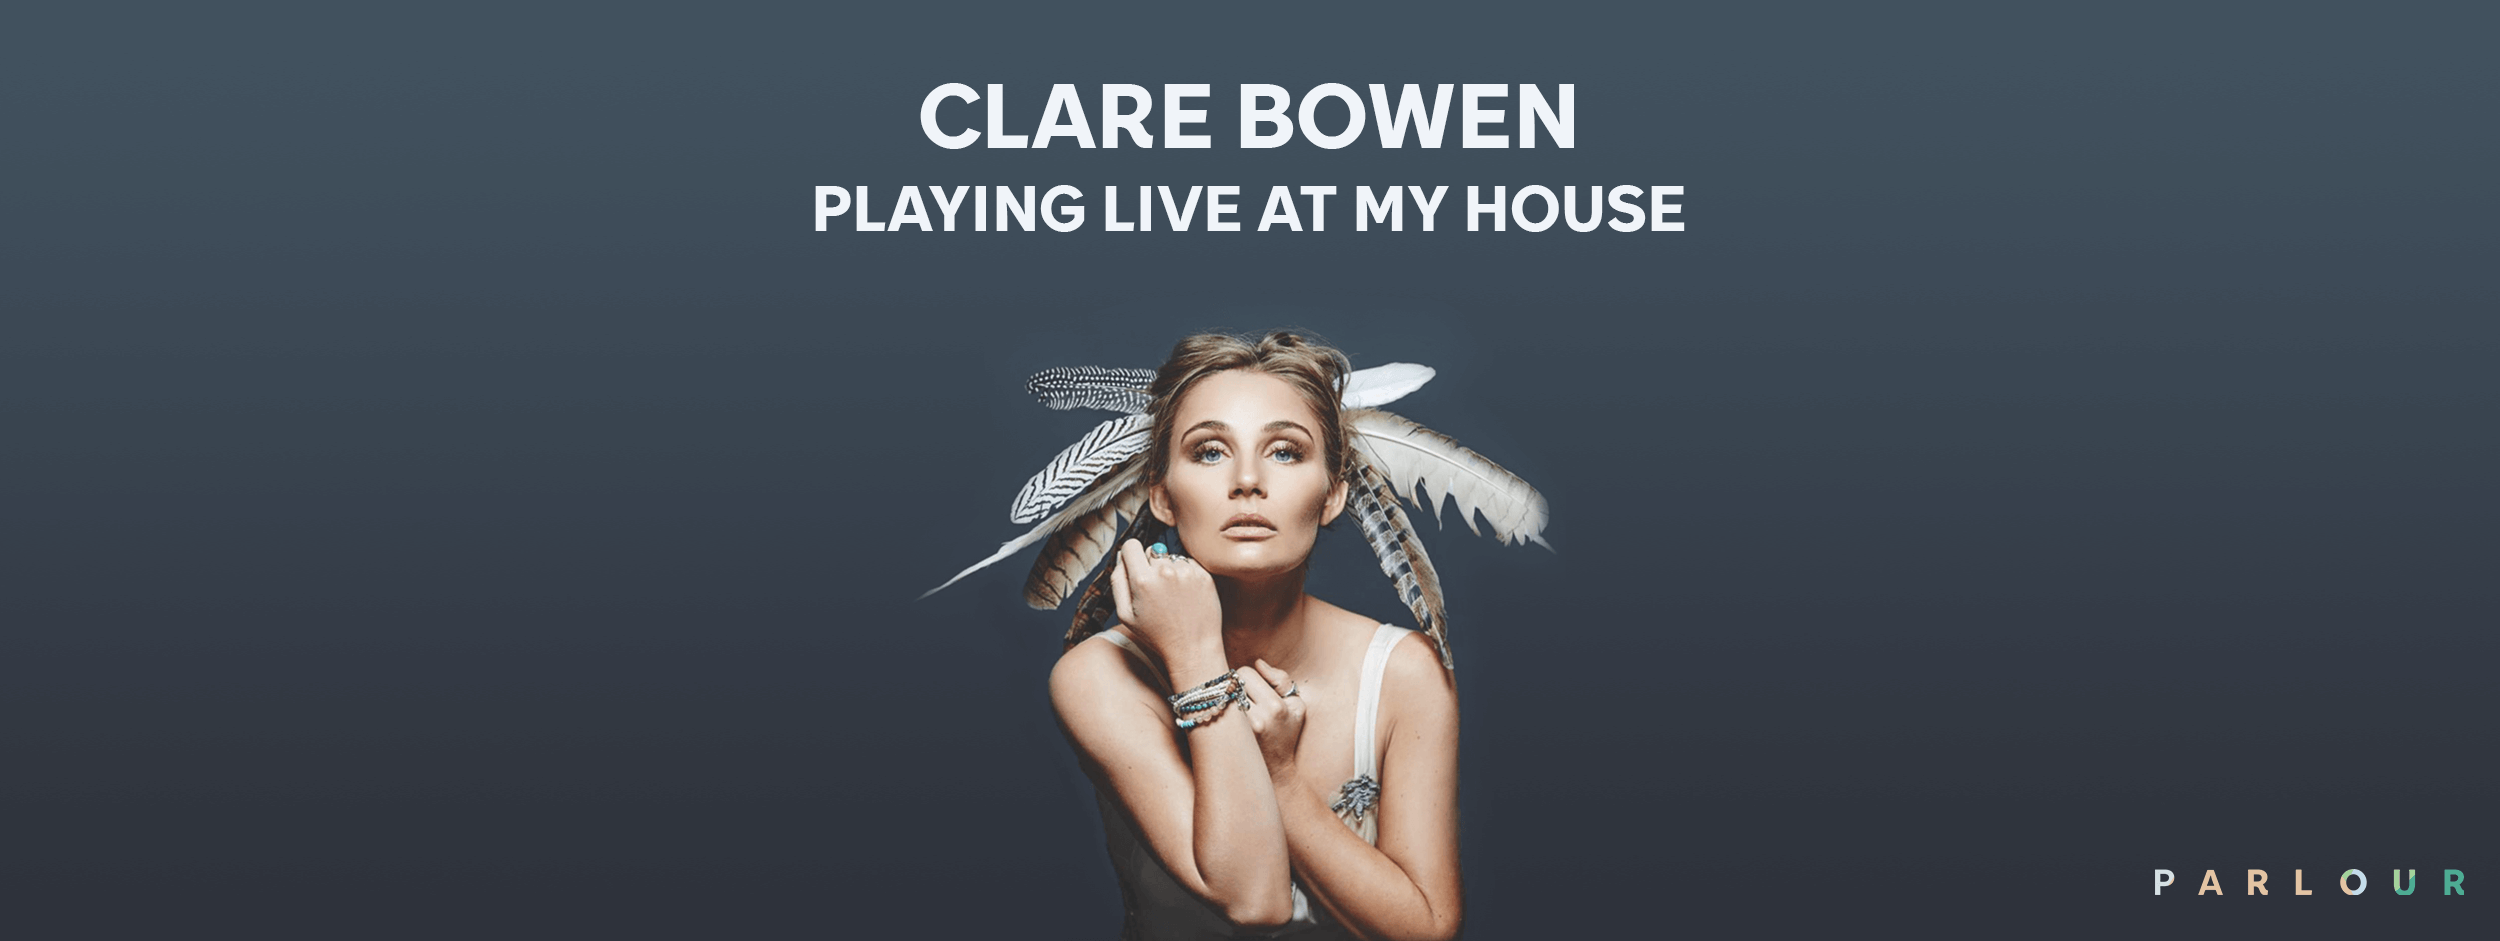 Clare Bowen Host Banner.png